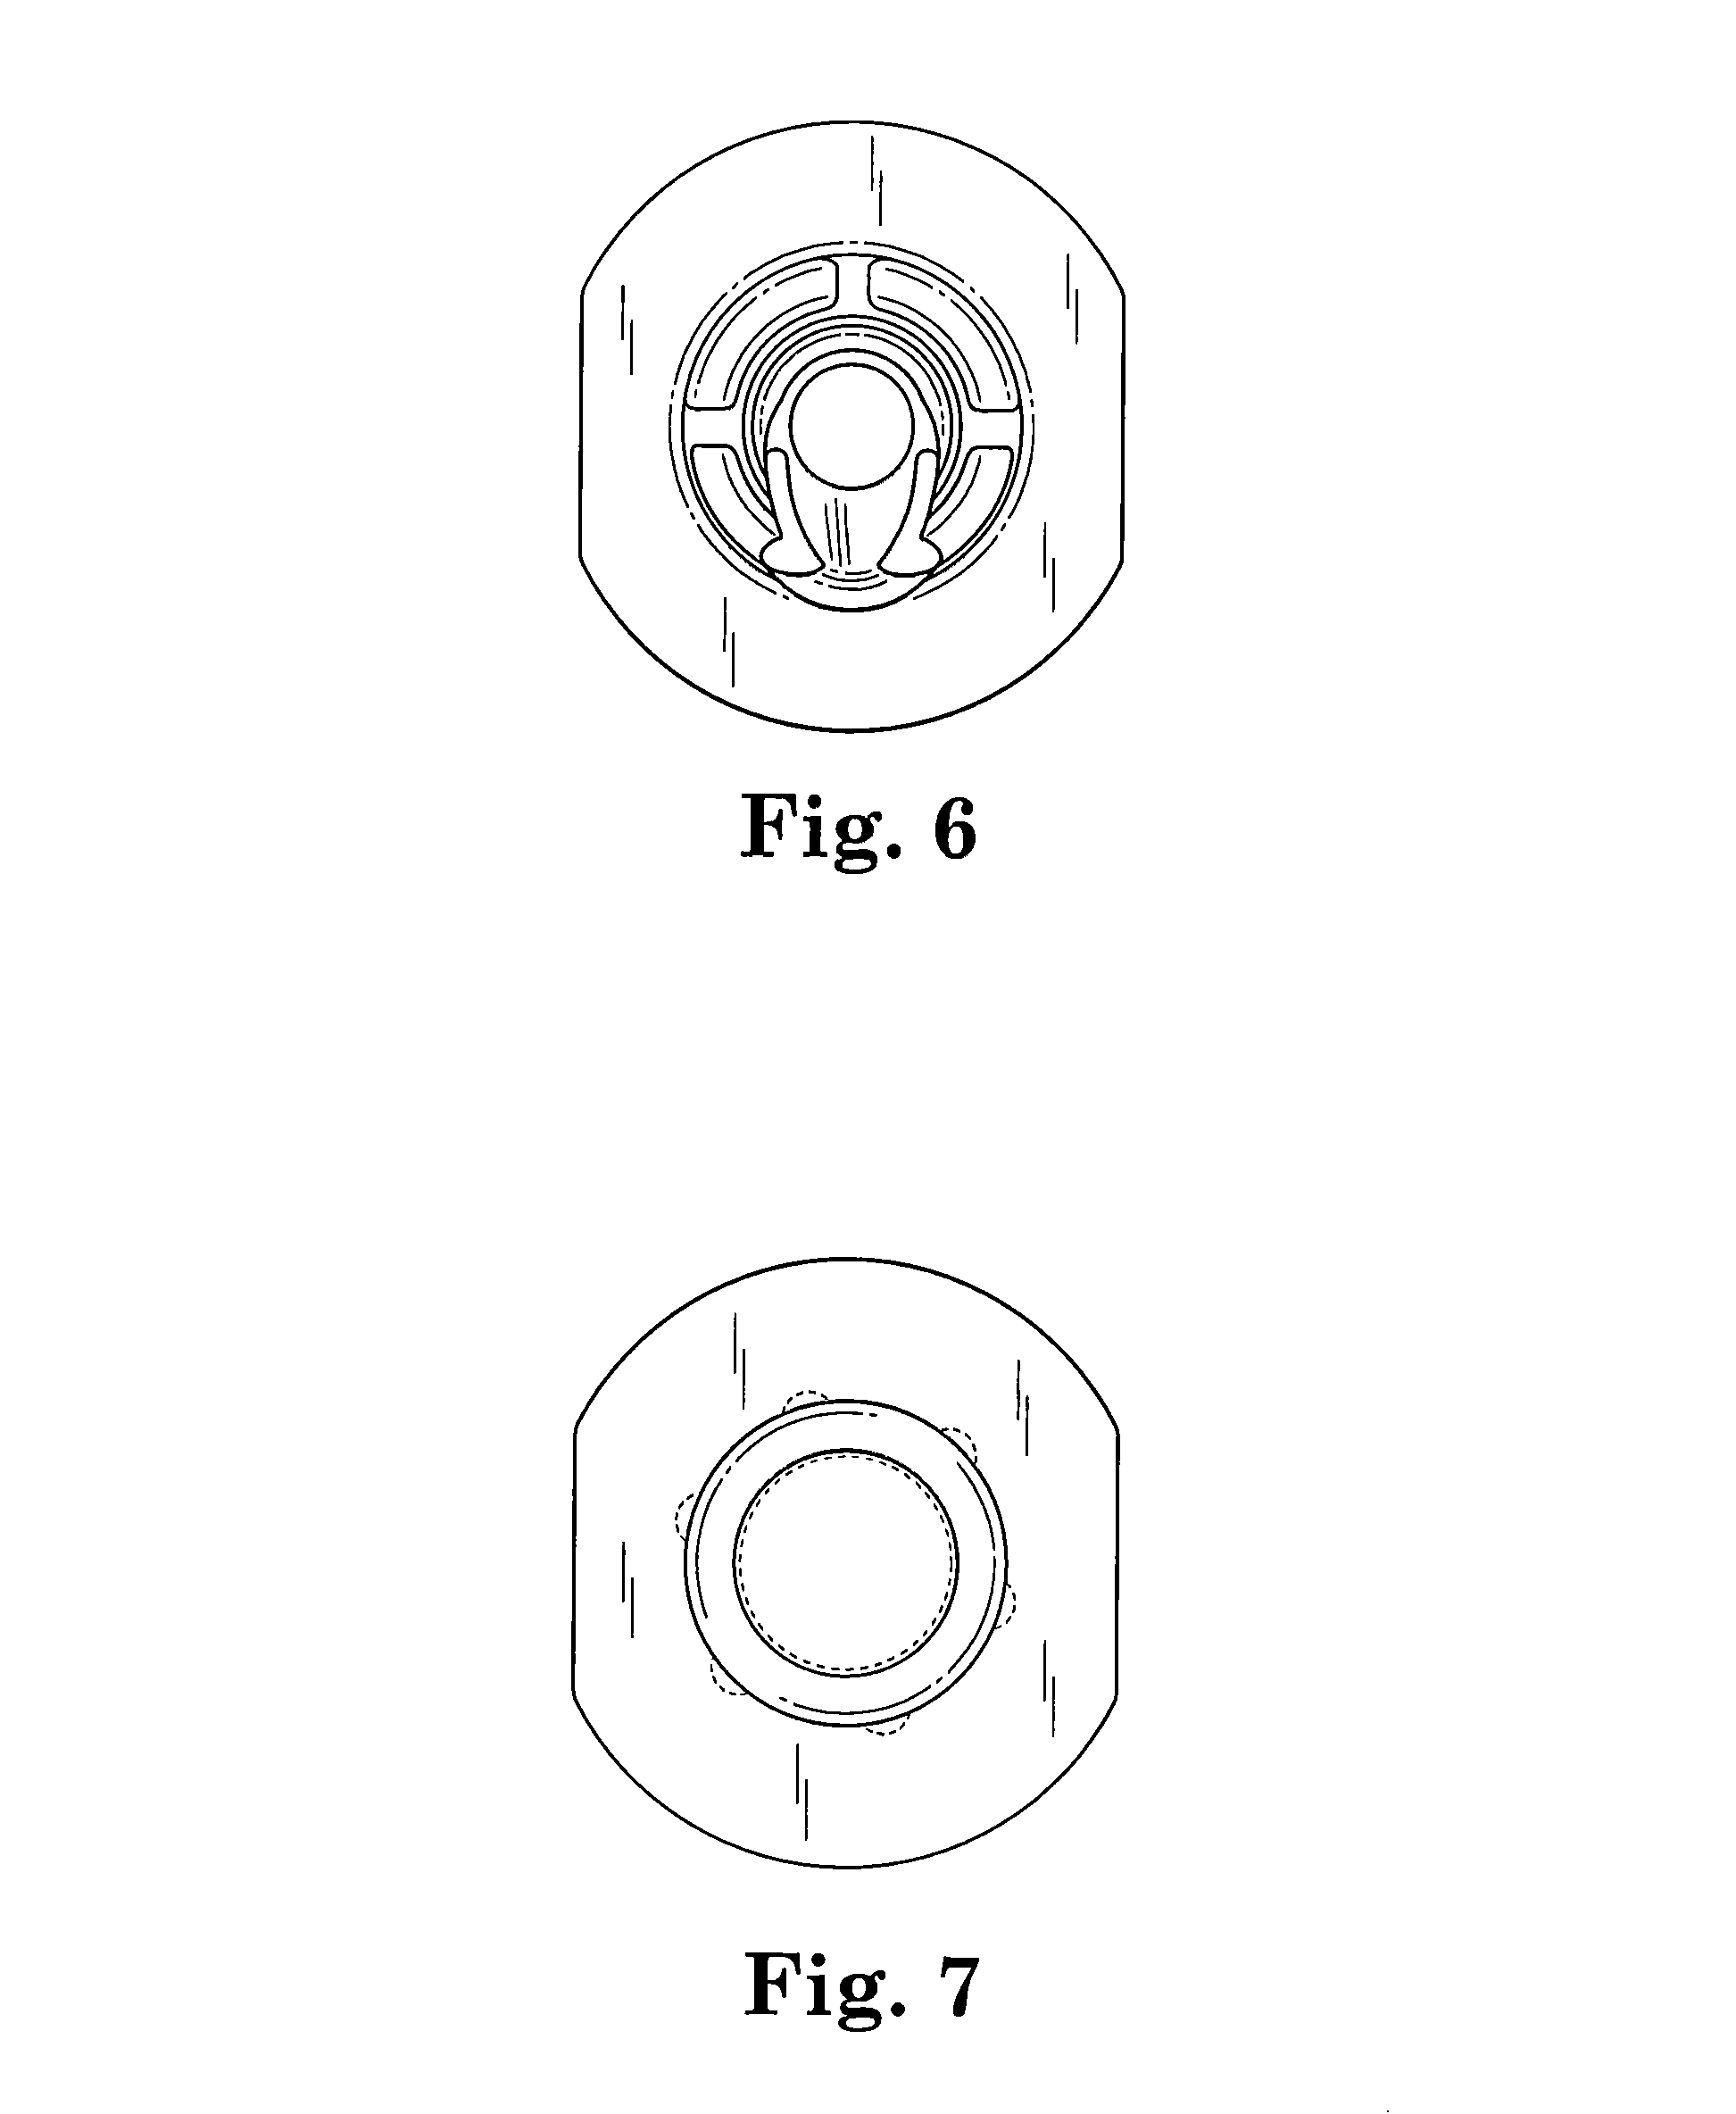 patent usd708737 biomaterial dispensing device google patents patent drawing